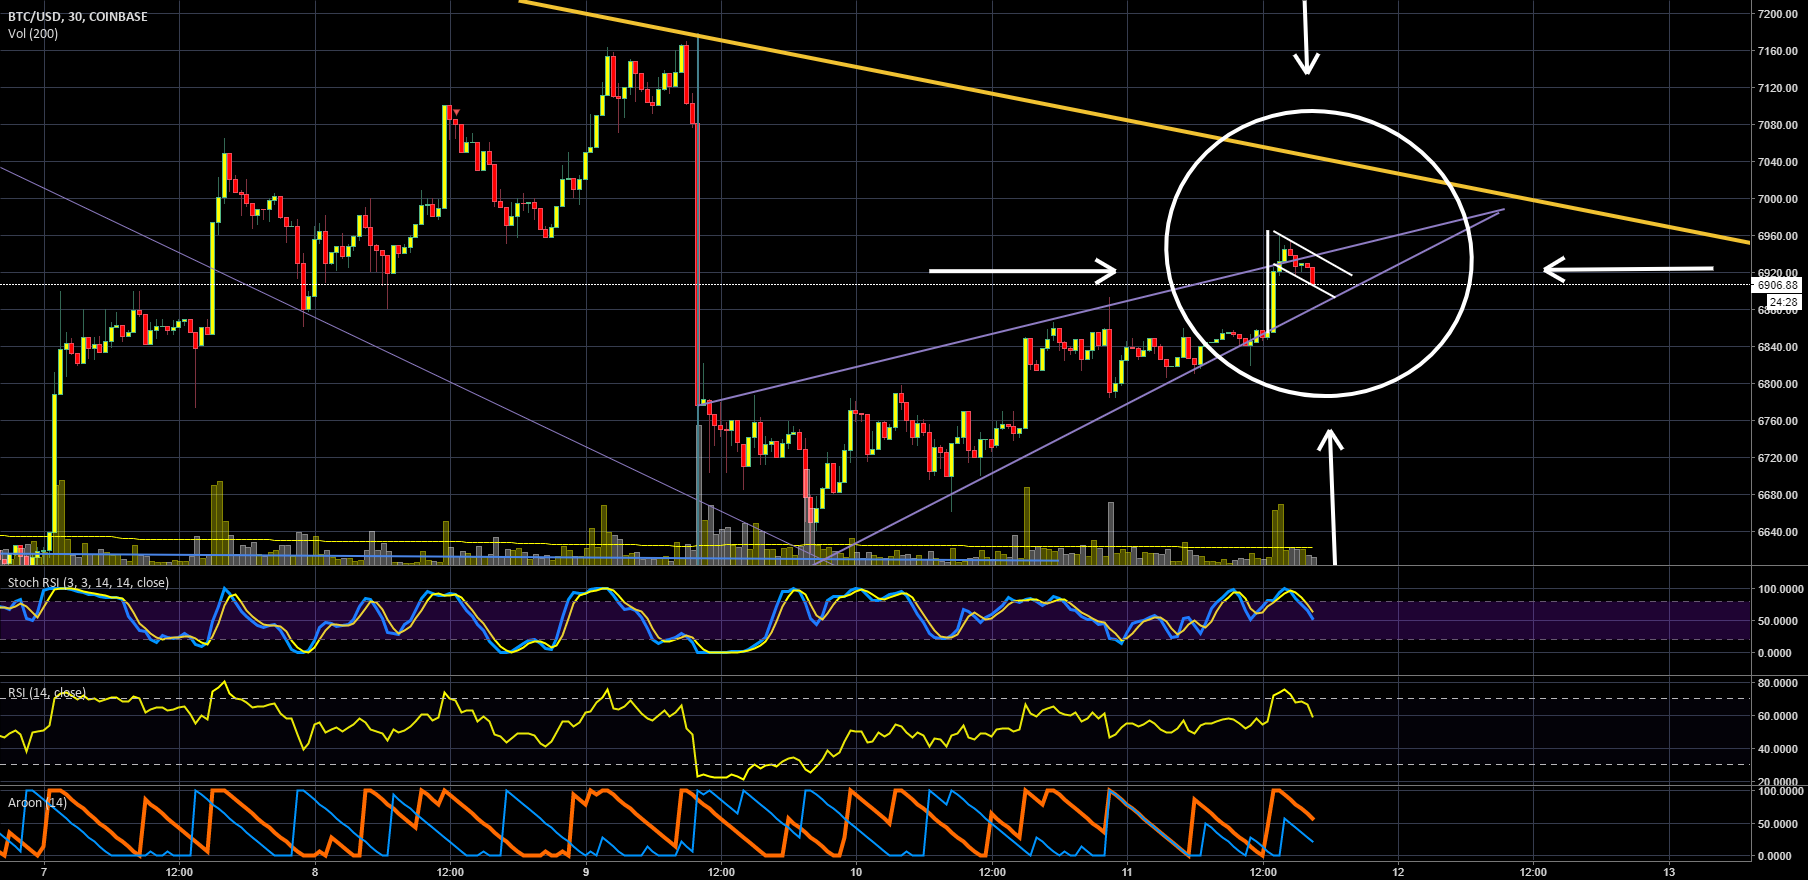 A Little Bull Flag Trying to Breakout from A Big Bearish Pennant